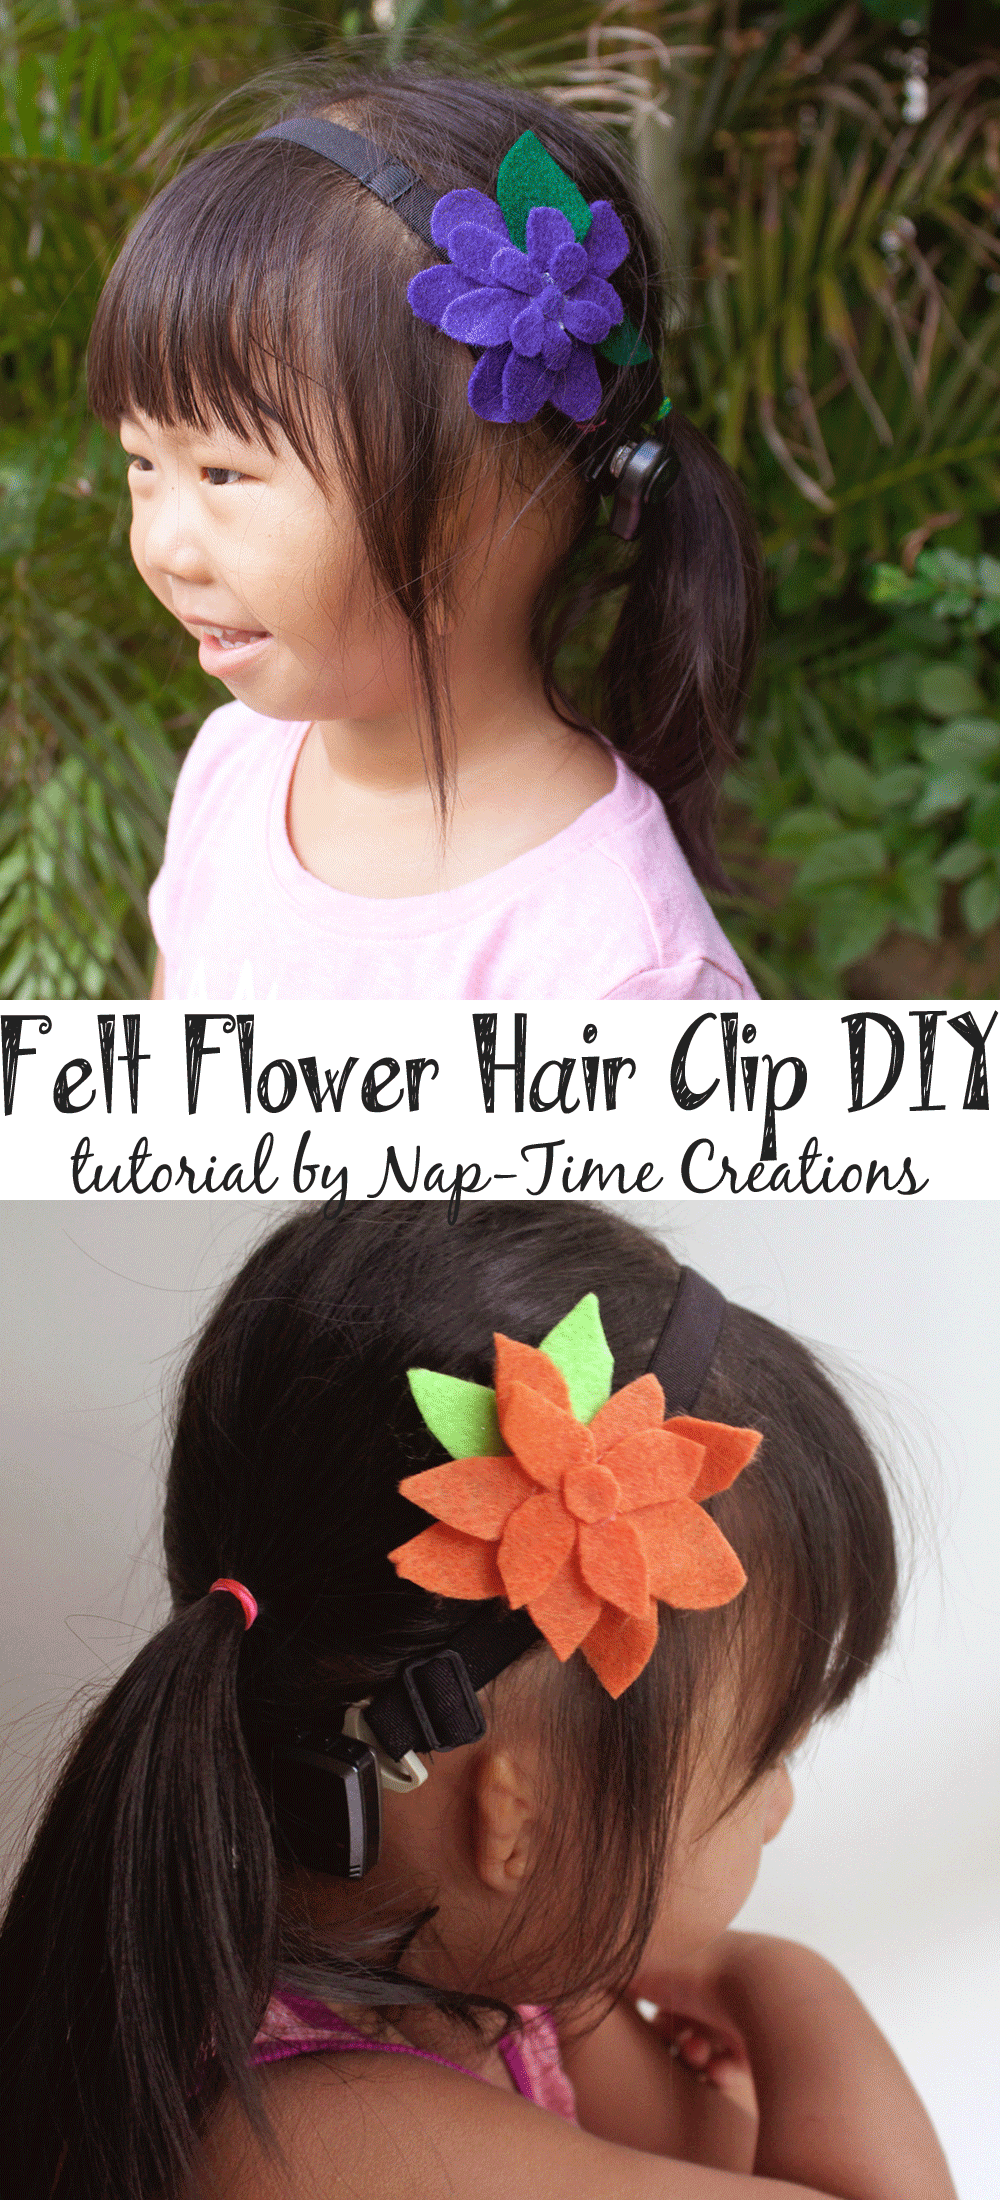 felt-flower-hair-clip-DIY by Nap-Time Creations